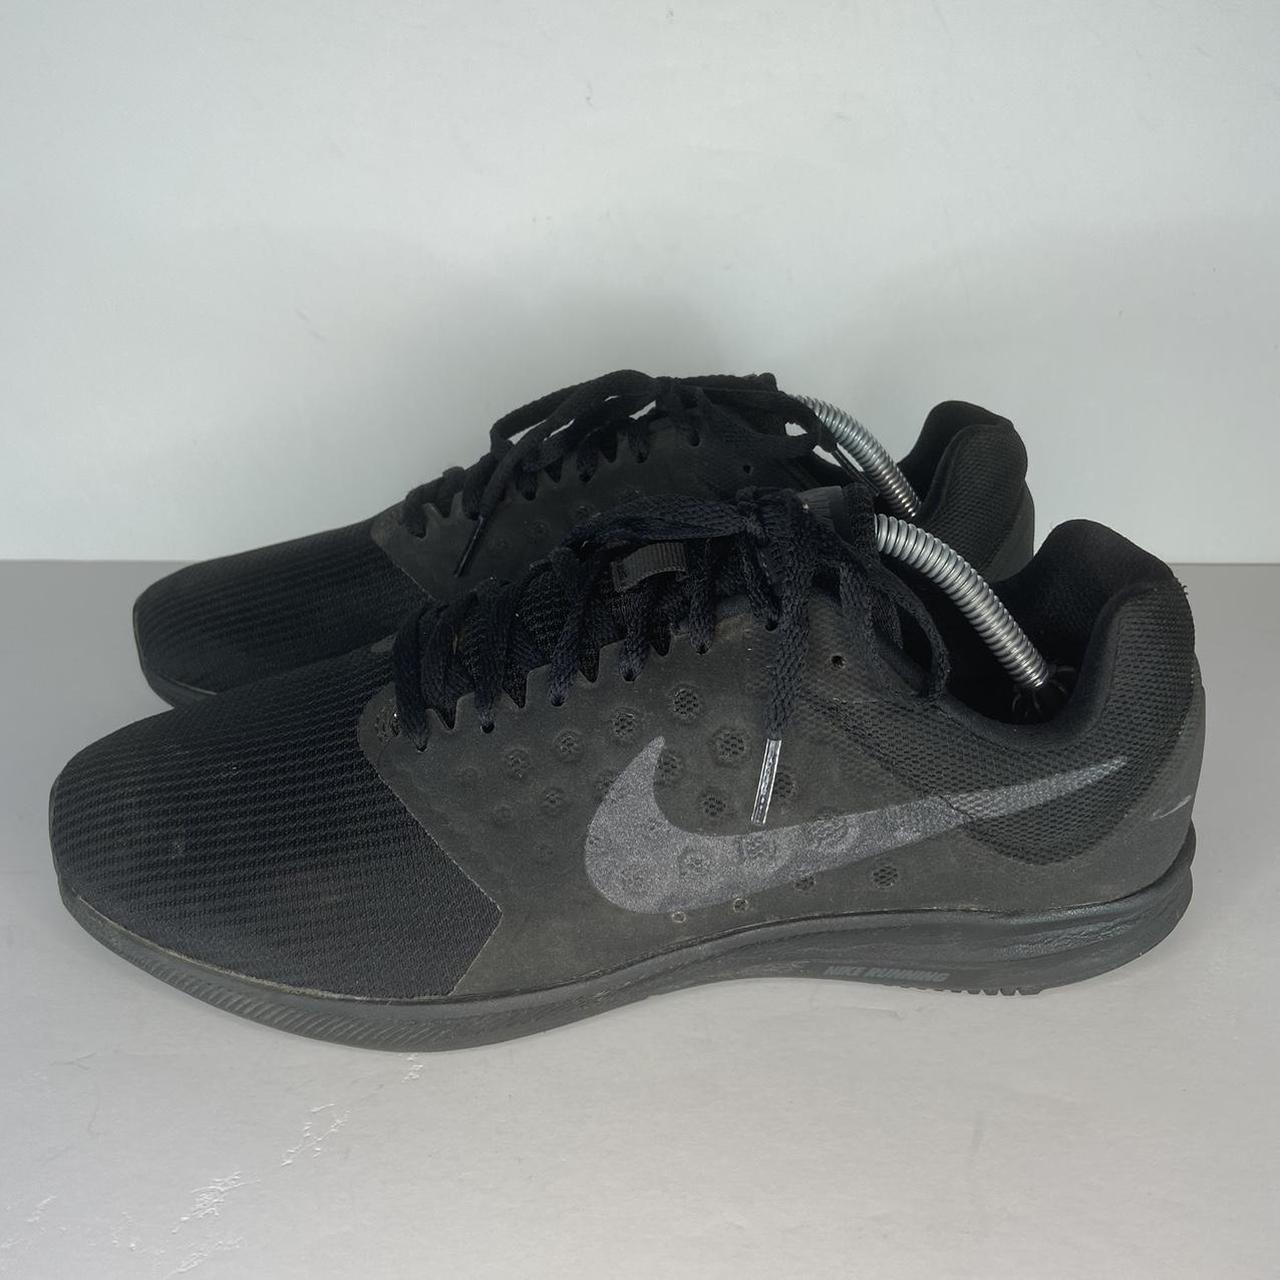 Product Image 1 - Nike downshifter 7 sneakers. Men's